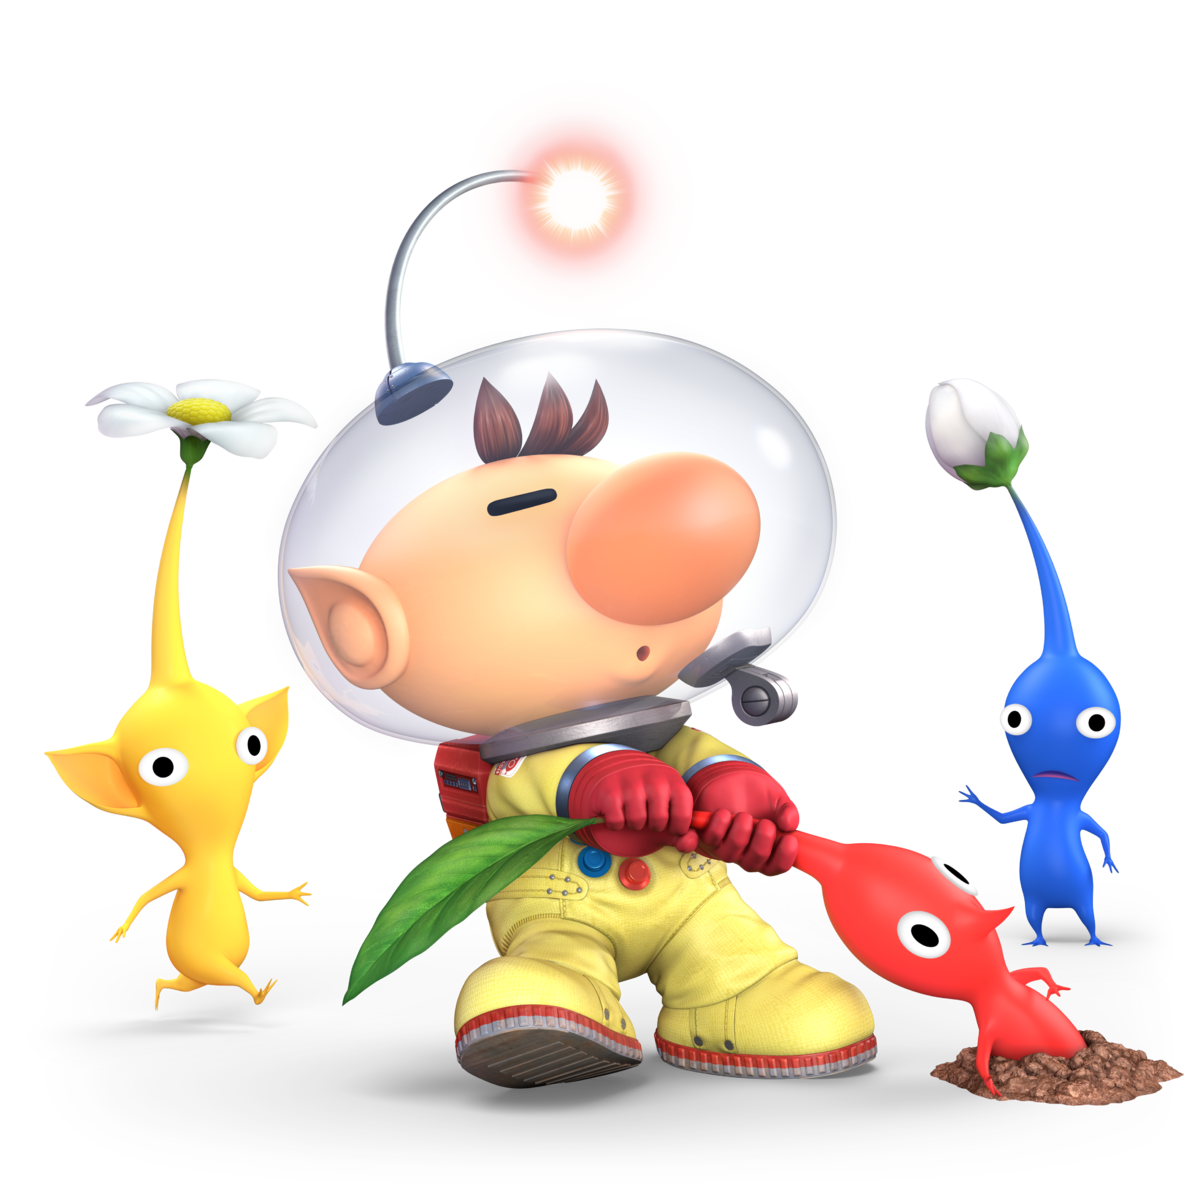 Transparent Nintendo Characters Png Super Smash Bros Ultimate Duck Hunt Png Download Is Free Transparent Png Imag Smash Bros Super Smash Bros Smash Bros Wii